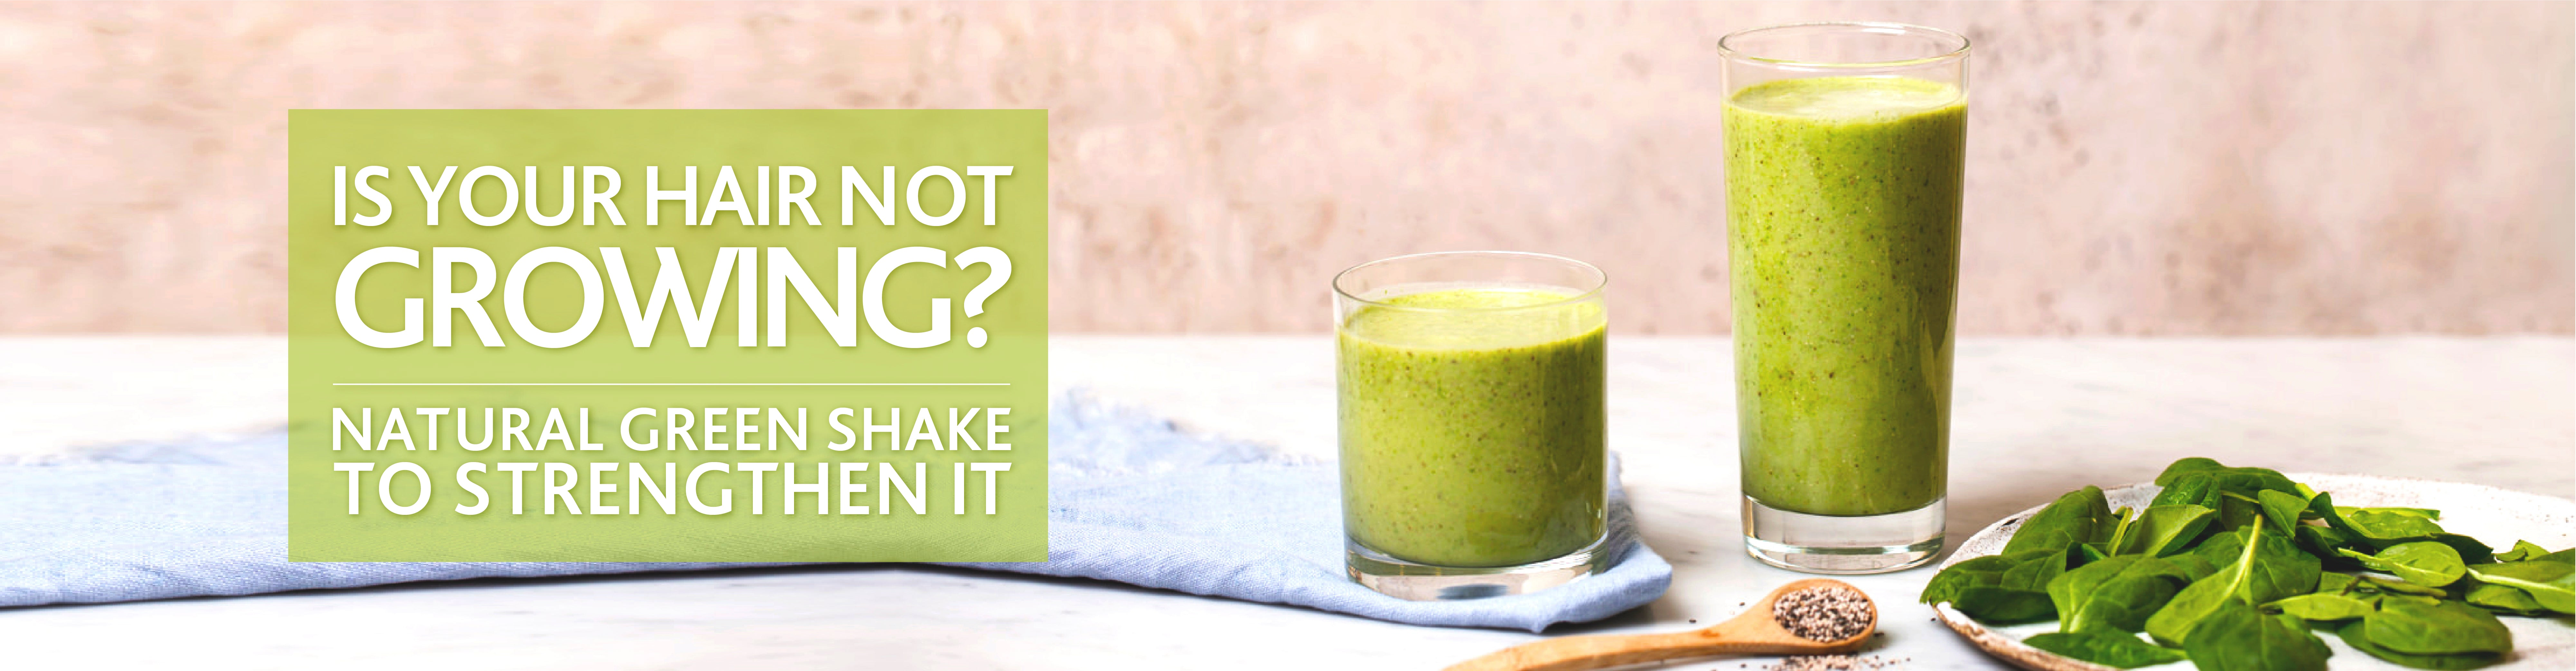 Is your hair not growing? Natural green shake to strengthen it